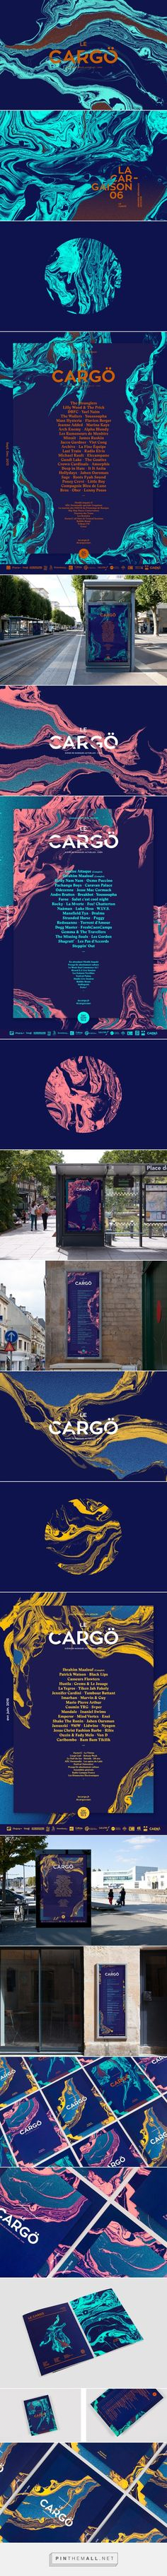 Le Cargö Concert Hall Branding by Murmure | Fivestar Branding Agency – Design and Branding Agency & Curated Inspiration Gallery 유화?.. 이미지